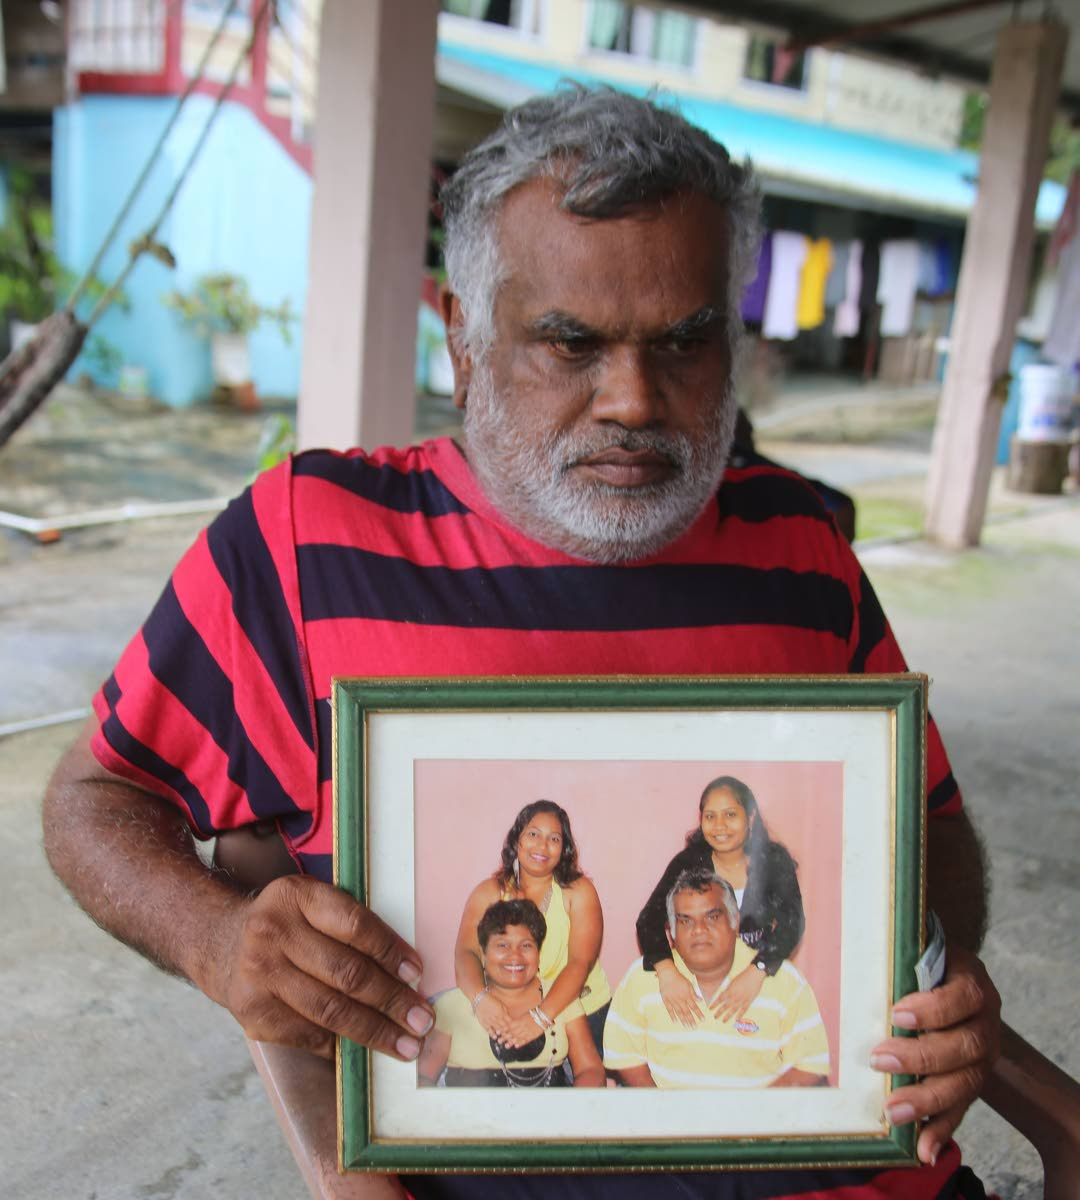 Rajendra Basdeo holds a family photo with his wife Lutchmin Rampersad-Basdeo and daughters Aarti and Annurada at his home in Rousillac yesterday. Lutchmin and Aarti died in a car crash on Friday.